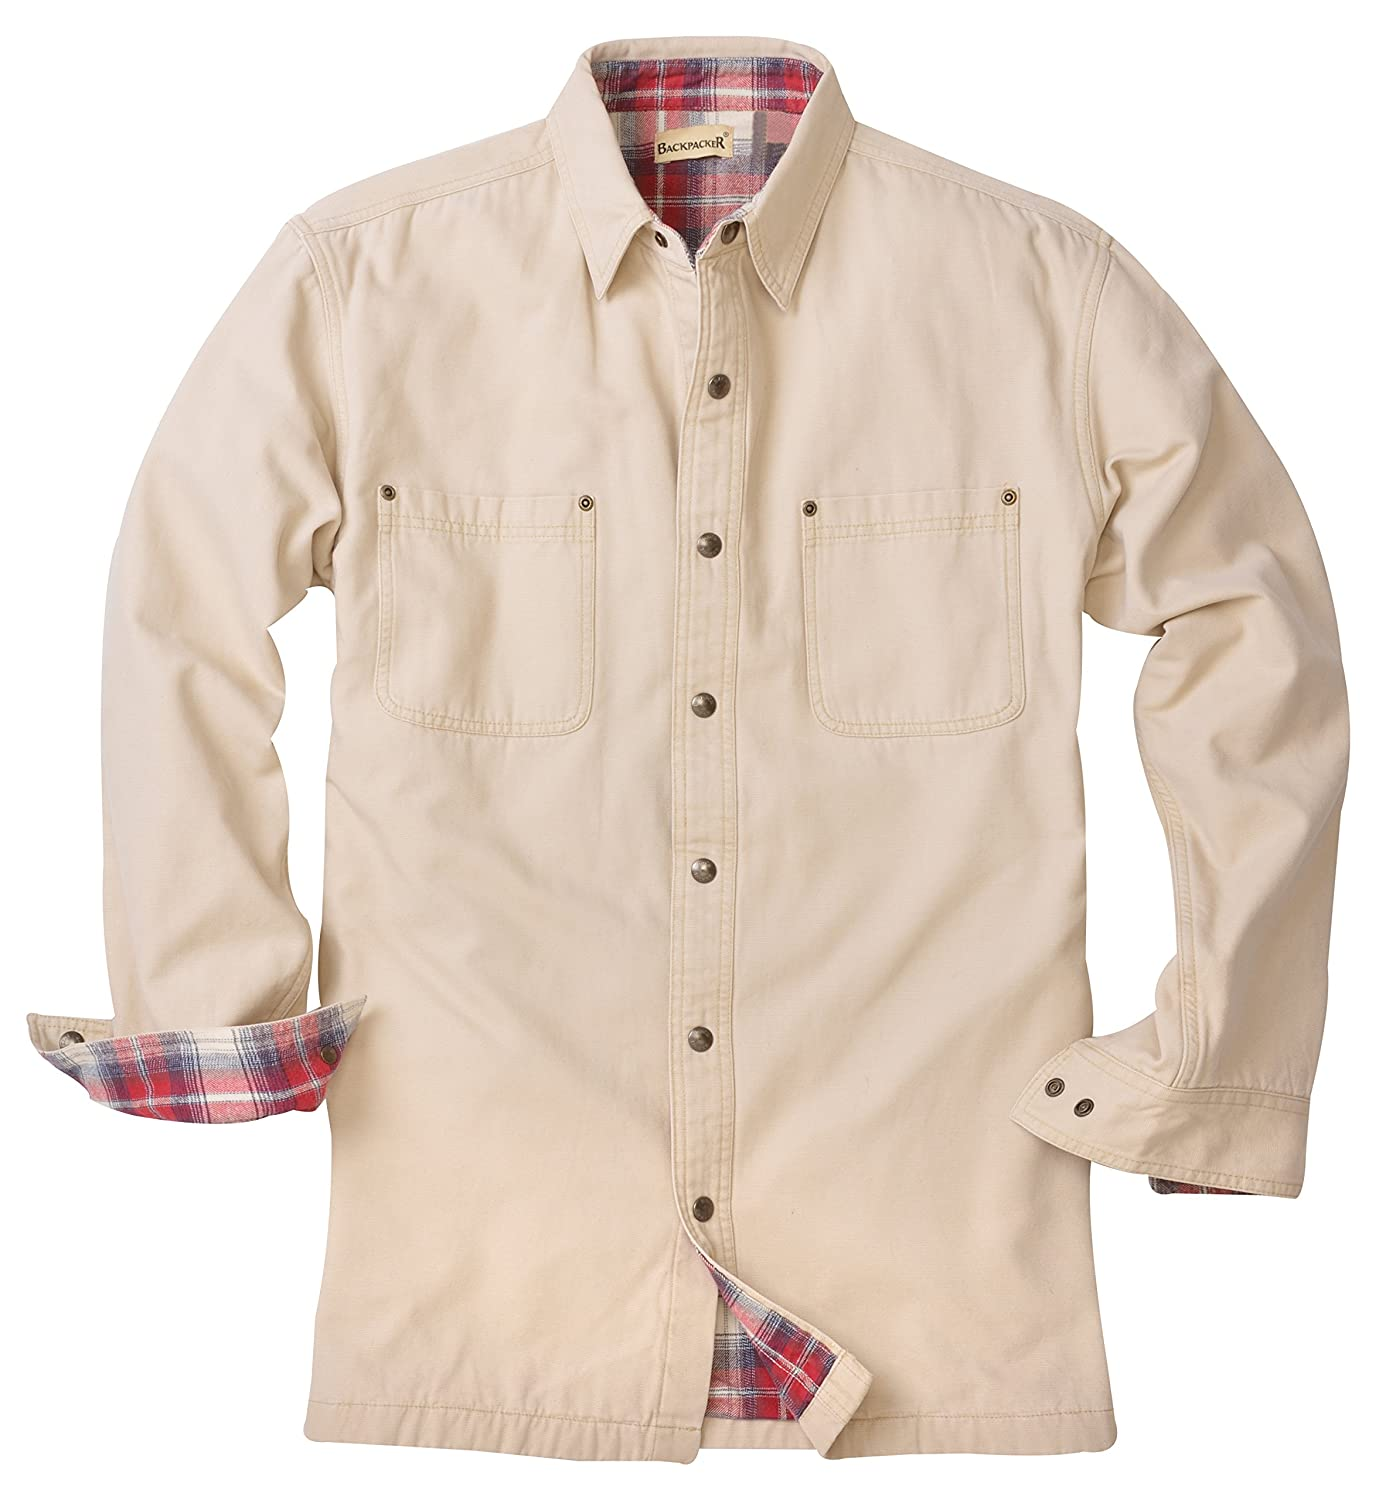 Backpacker Canvas//Flannel Lined Shirt Jacket